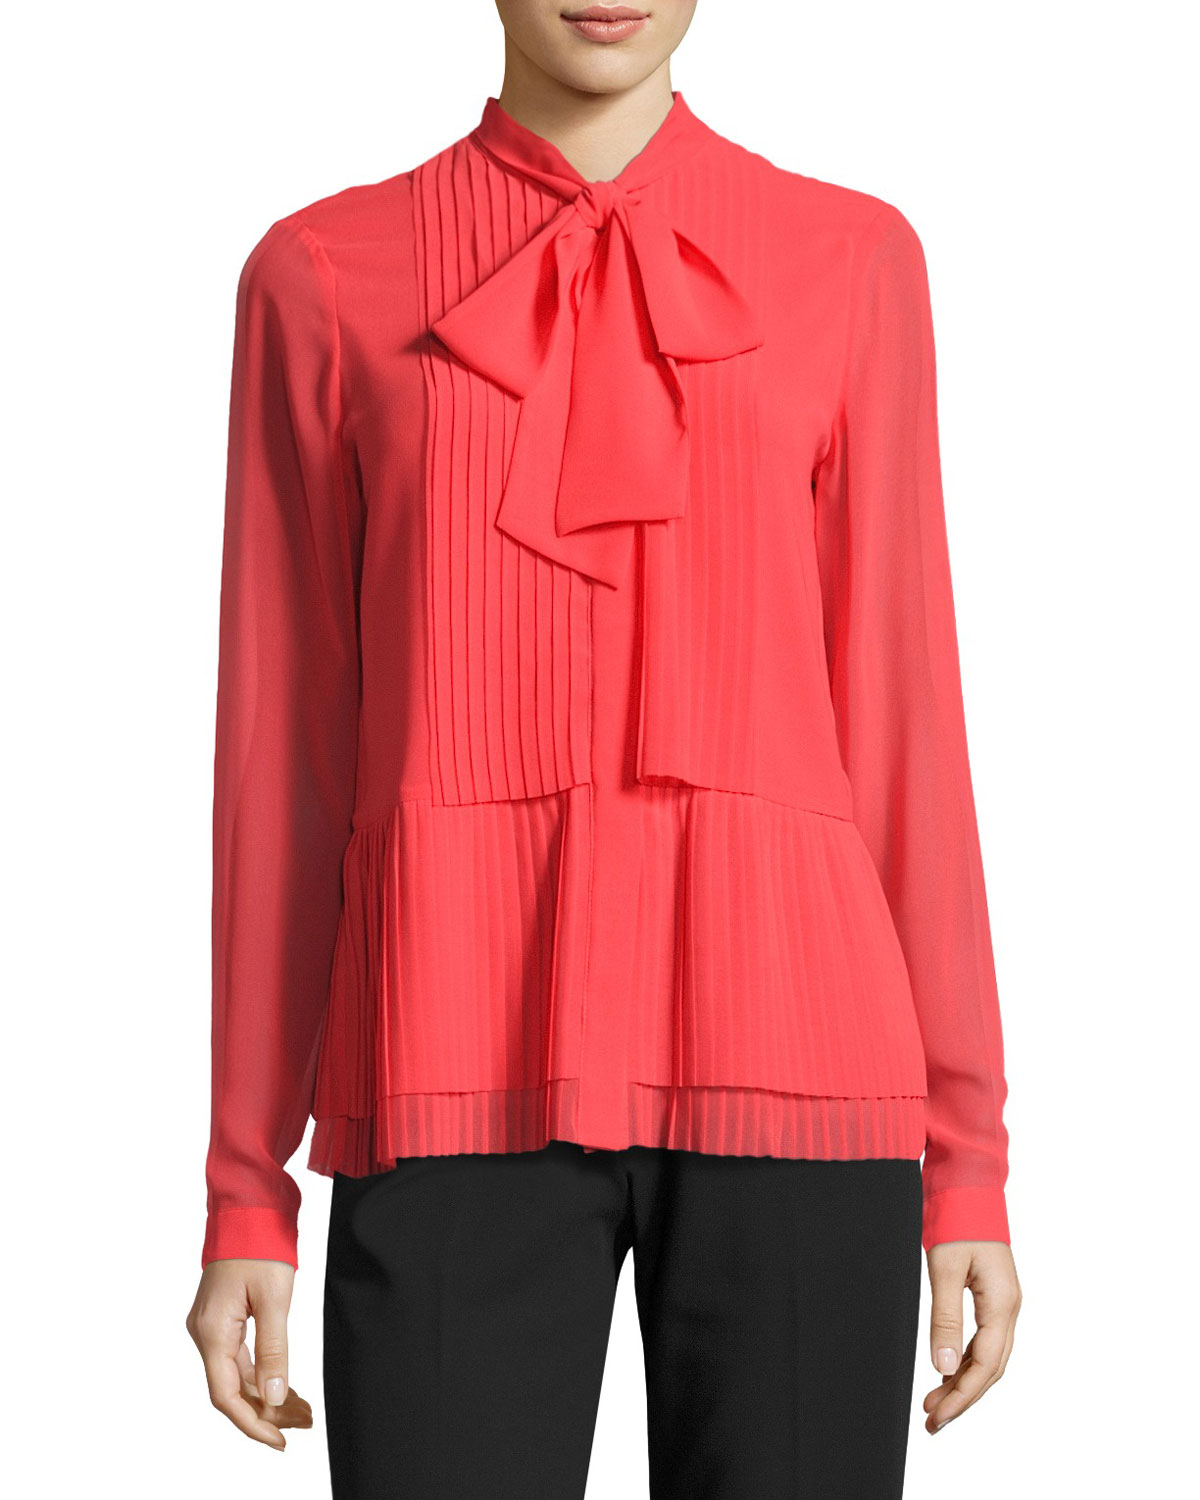 Long-Sleeve Bow-Neck Pleated Blouse, Pink